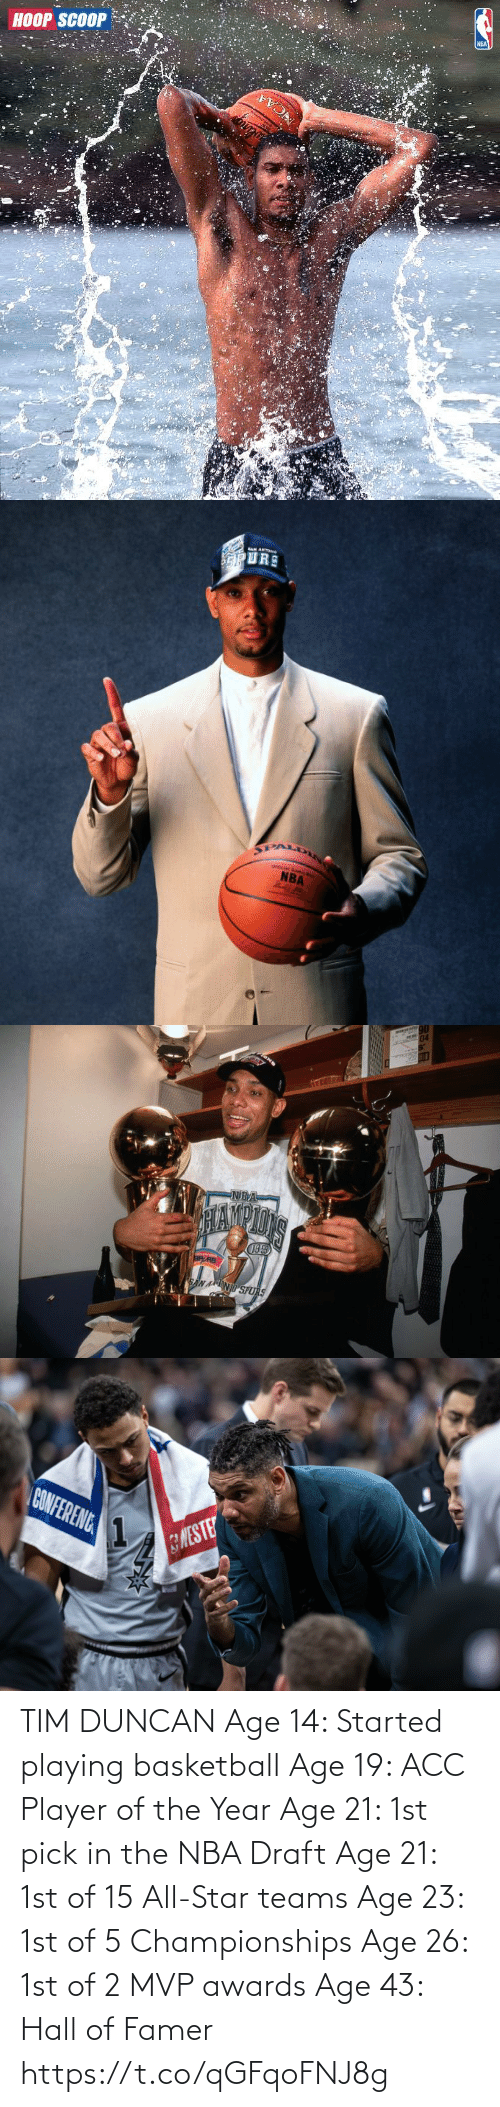 All Star, Basketball, and Memes: TIM DUNCAN  Age 14: Started playing basketball Age 19: ACC Player of the Year Age 21: 1st pick in the NBA Draft Age 21: 1st of 15 All-Star teams Age 23: 1st of 5 Championships Age 26: 1st of 2 MVP awards Age 43: Hall of Famer https://t.co/qGFqoFNJ8g